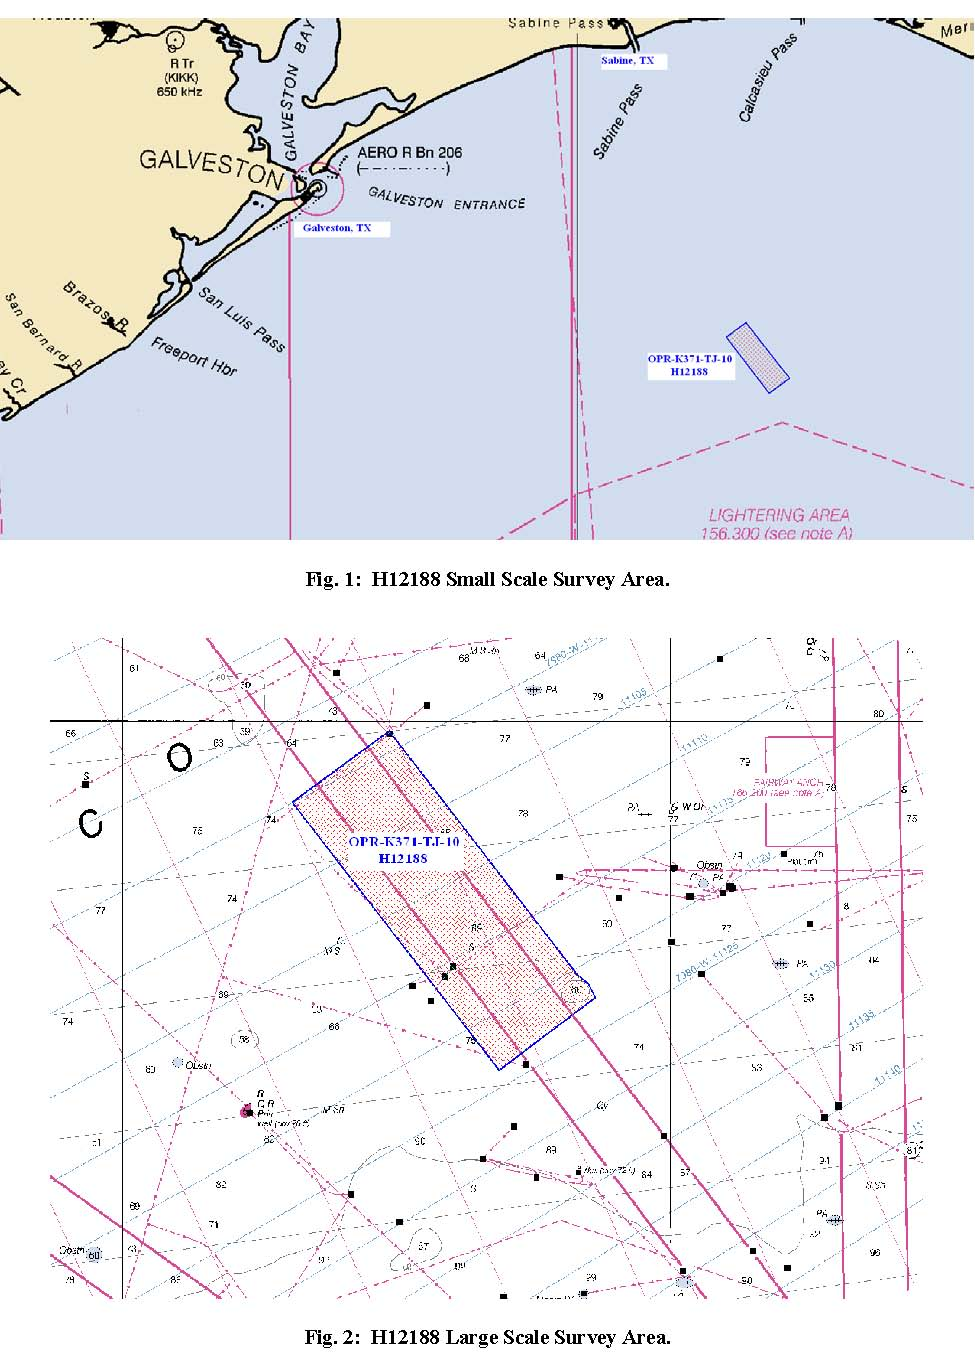 H12188 Nos Hydrographic Survey Cameron Louisiana To Sabine